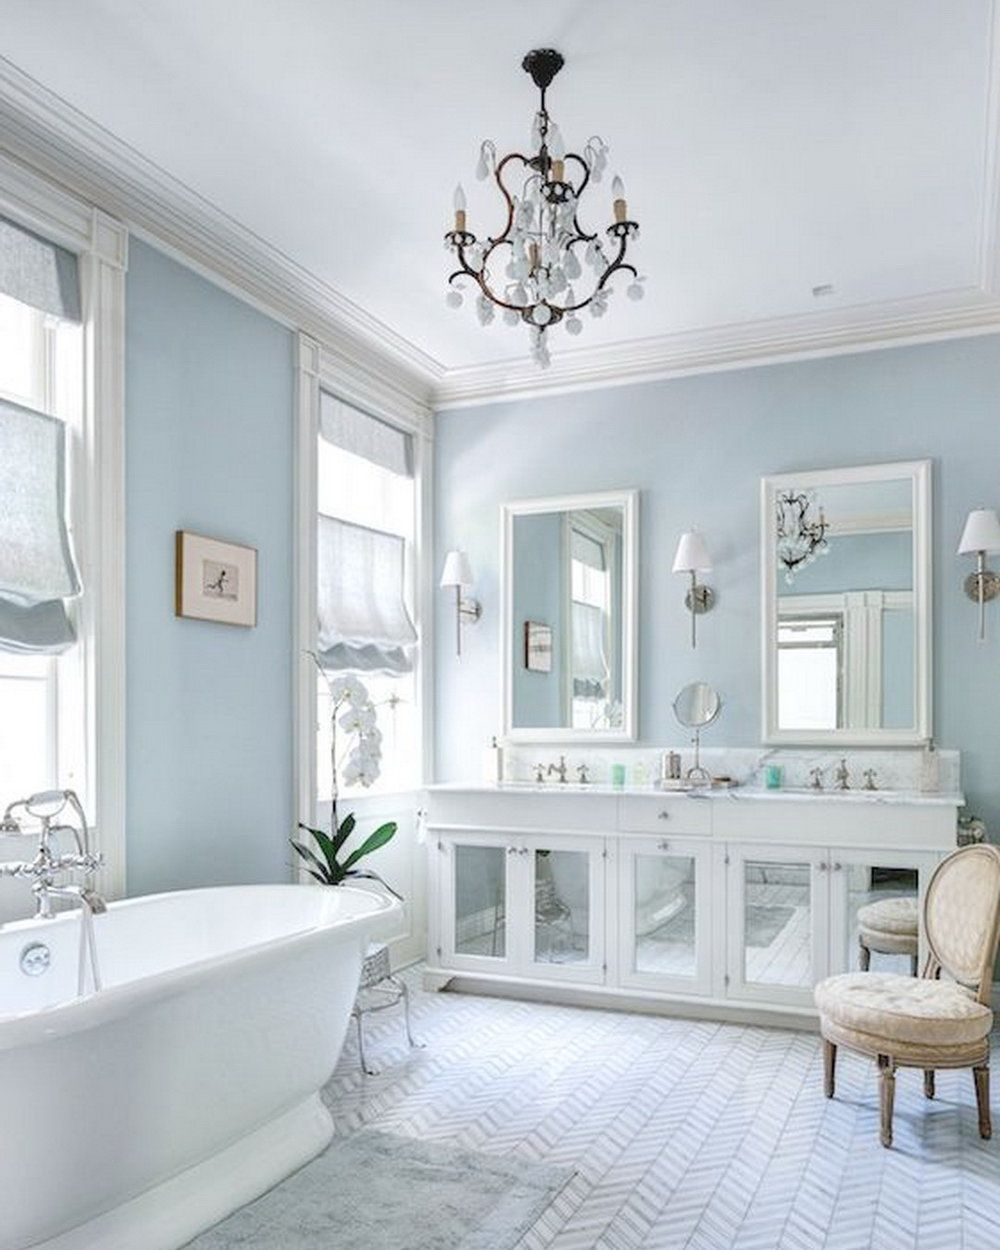 12 Luxurious Bathroom Design Ideas | Pinterest | French vanity, Blue ...